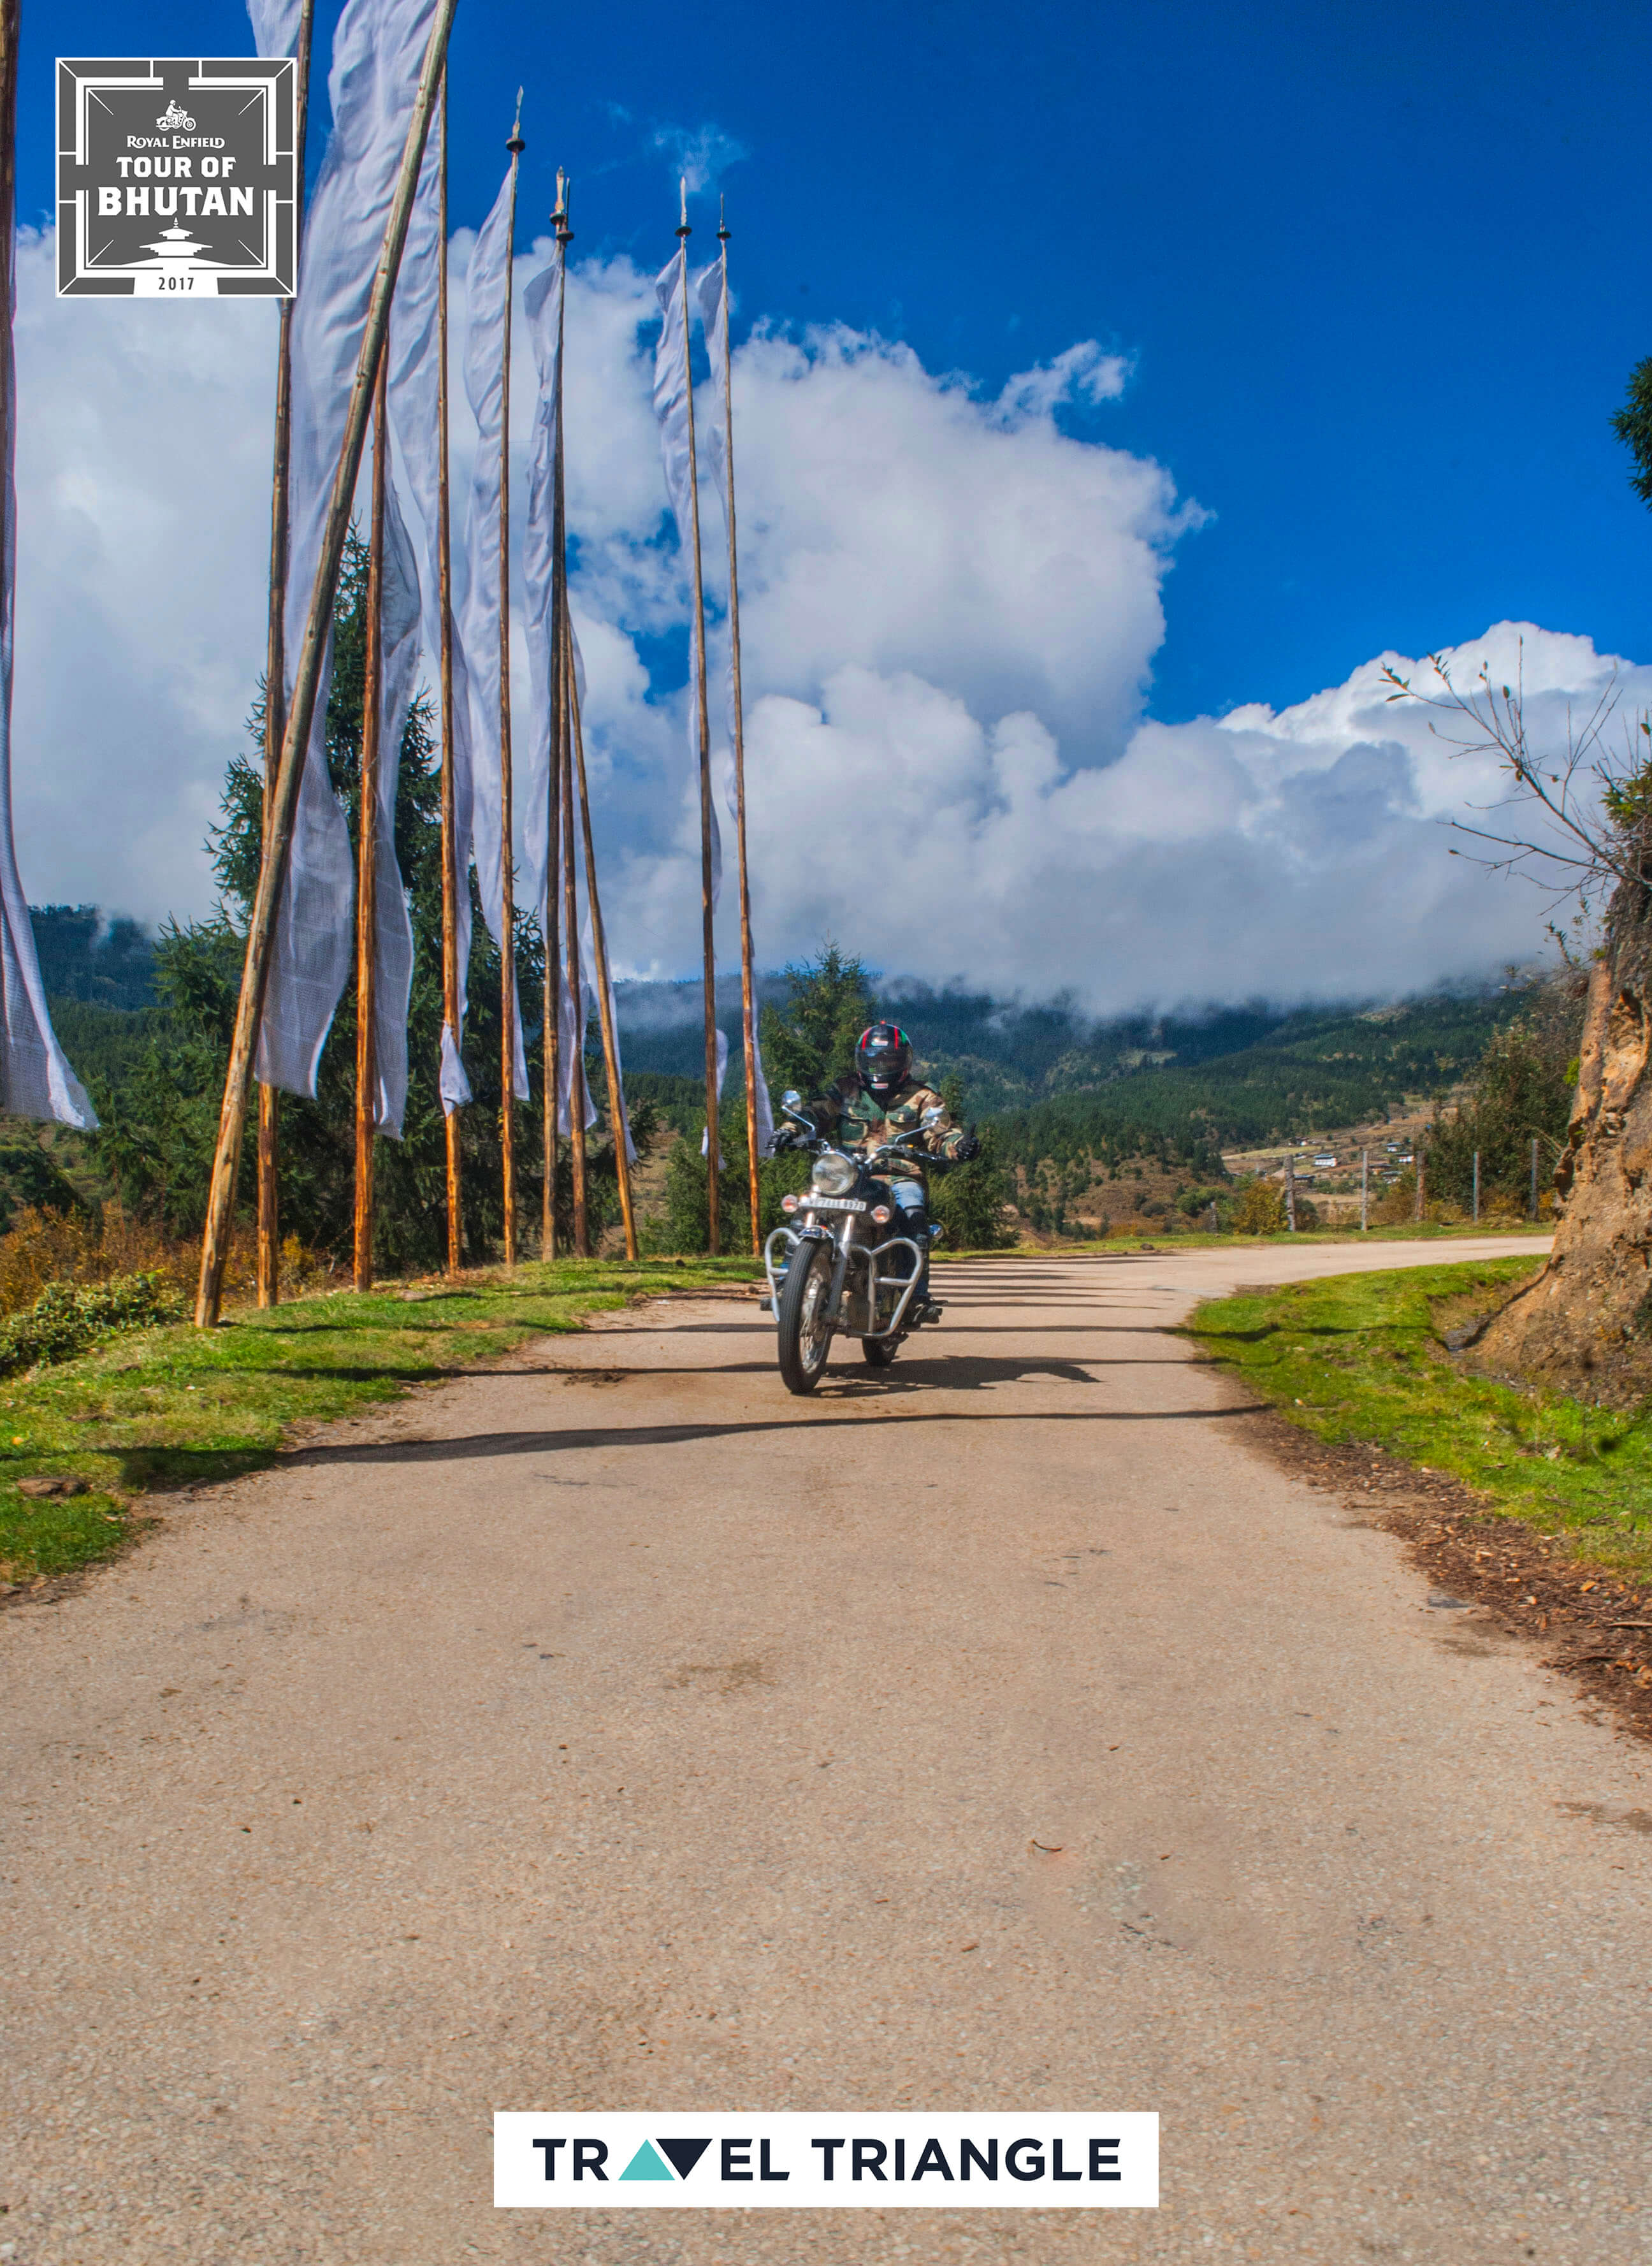 Bumthang to Mongar: riding through beautiful landscapes